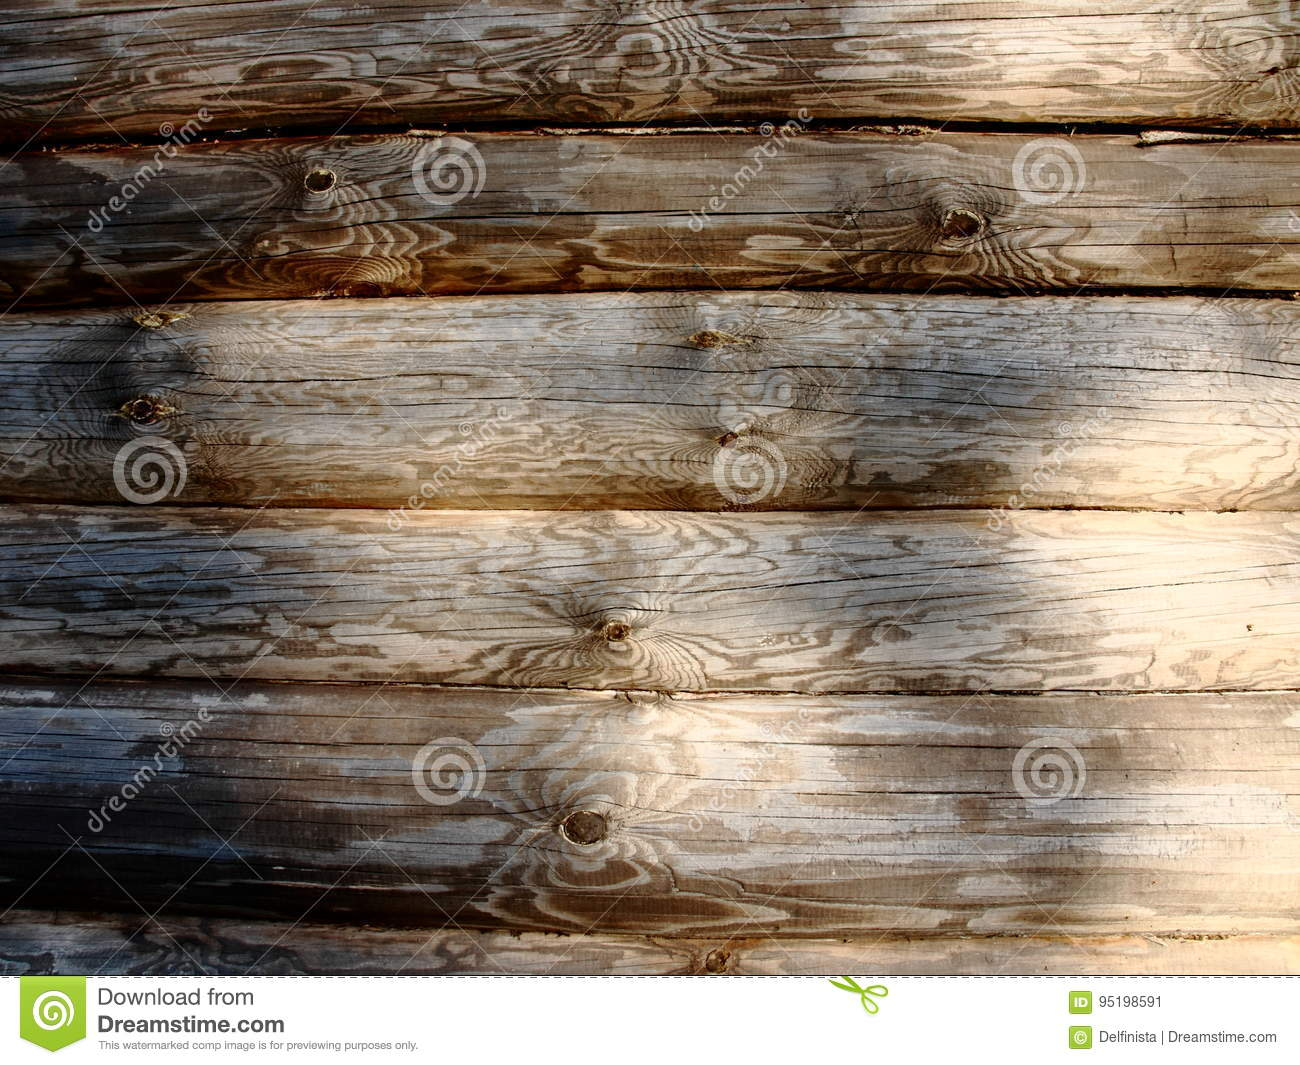 Old Wood texture plank background - wooden desk table wall or floor